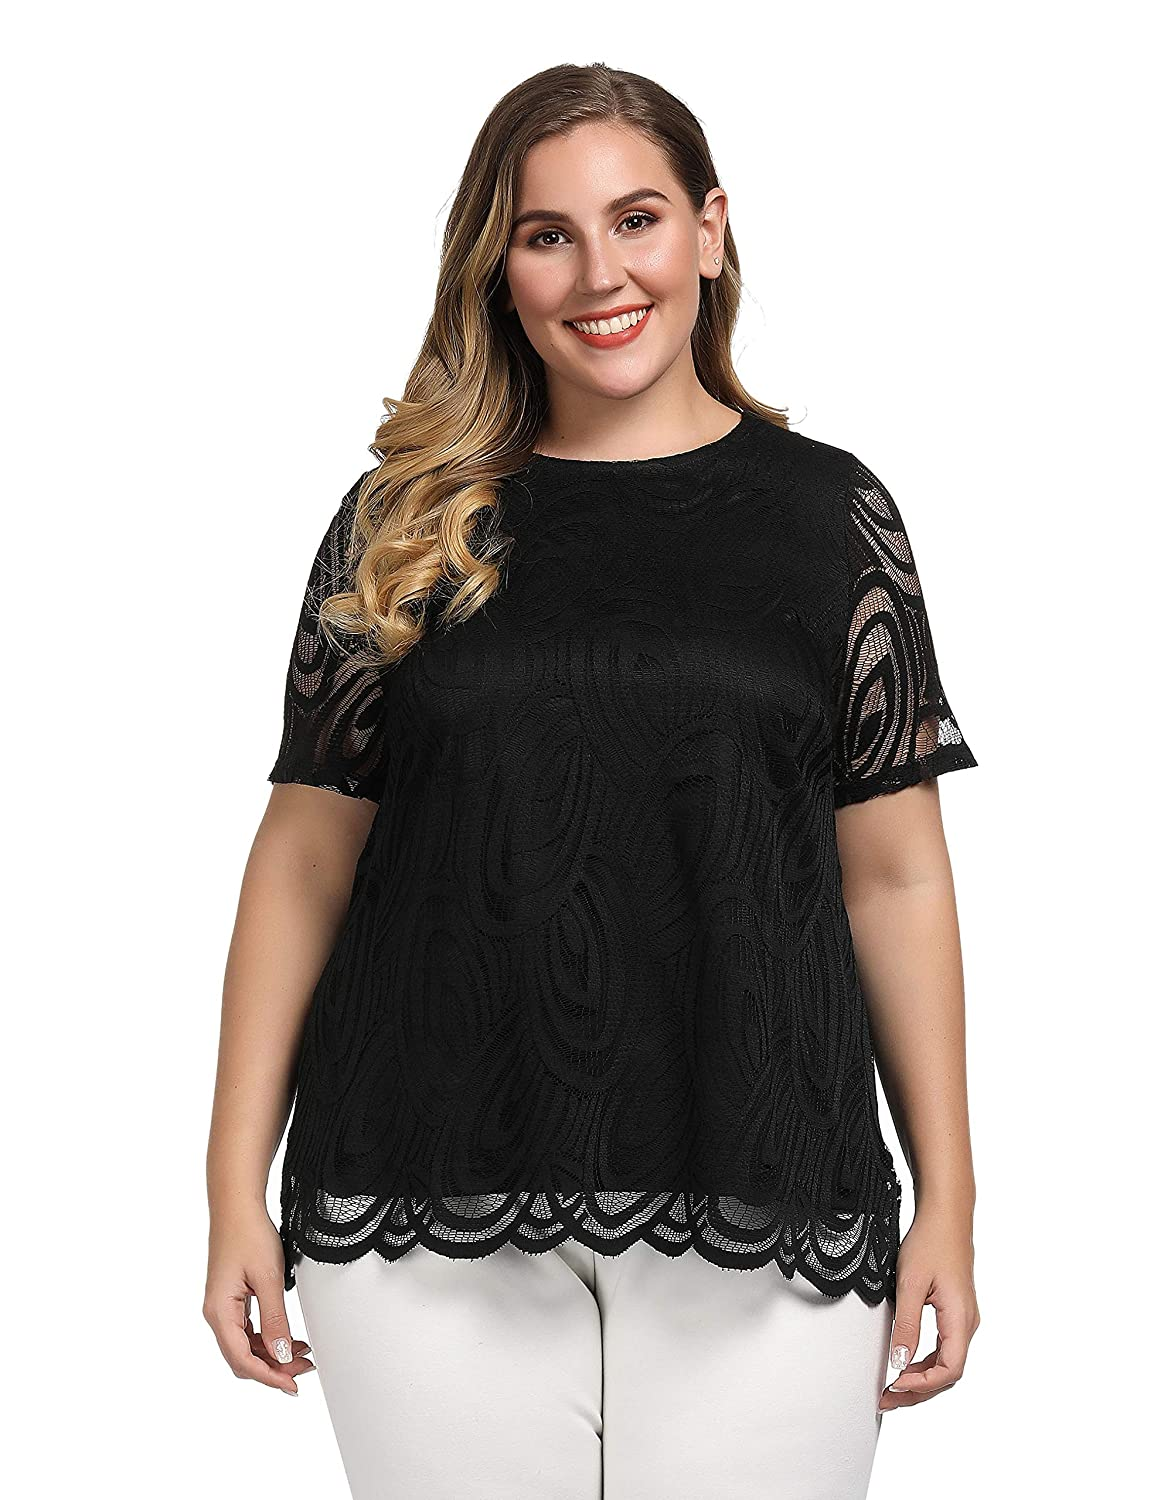 Casual and Work Blouse Chicwe Womens Plus Size Scalloped Lace Solid Top